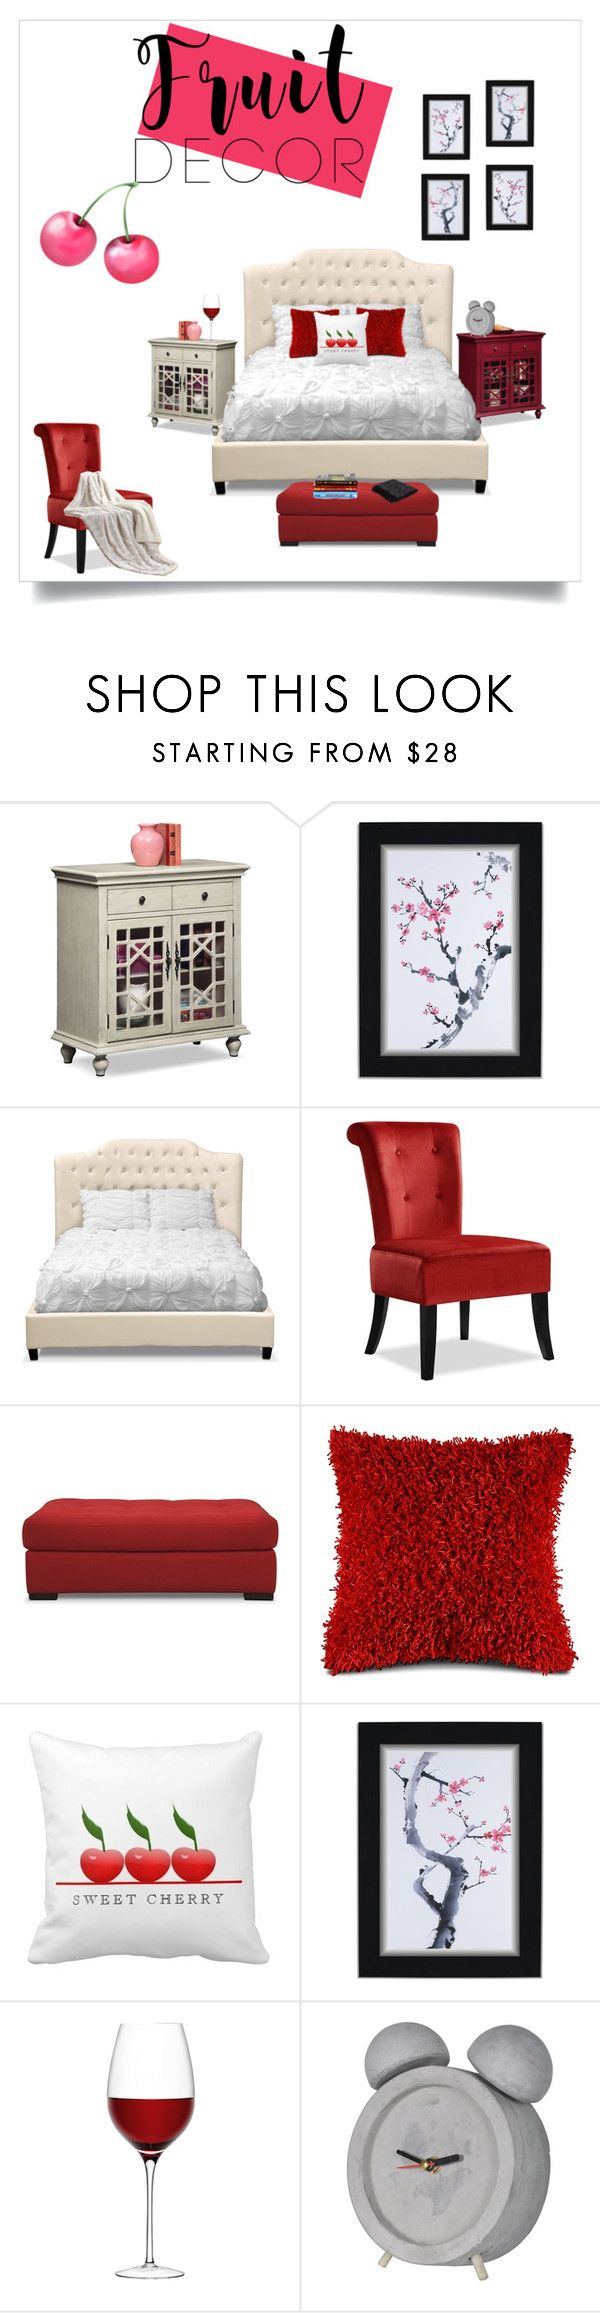 """""""cherry picking season"""" by valuecityfurn ❤ liked on Polyvore featuring interior, interiors, interior design, home, home decor, interior decorating, LSA International, Jaipur and bedroom"""